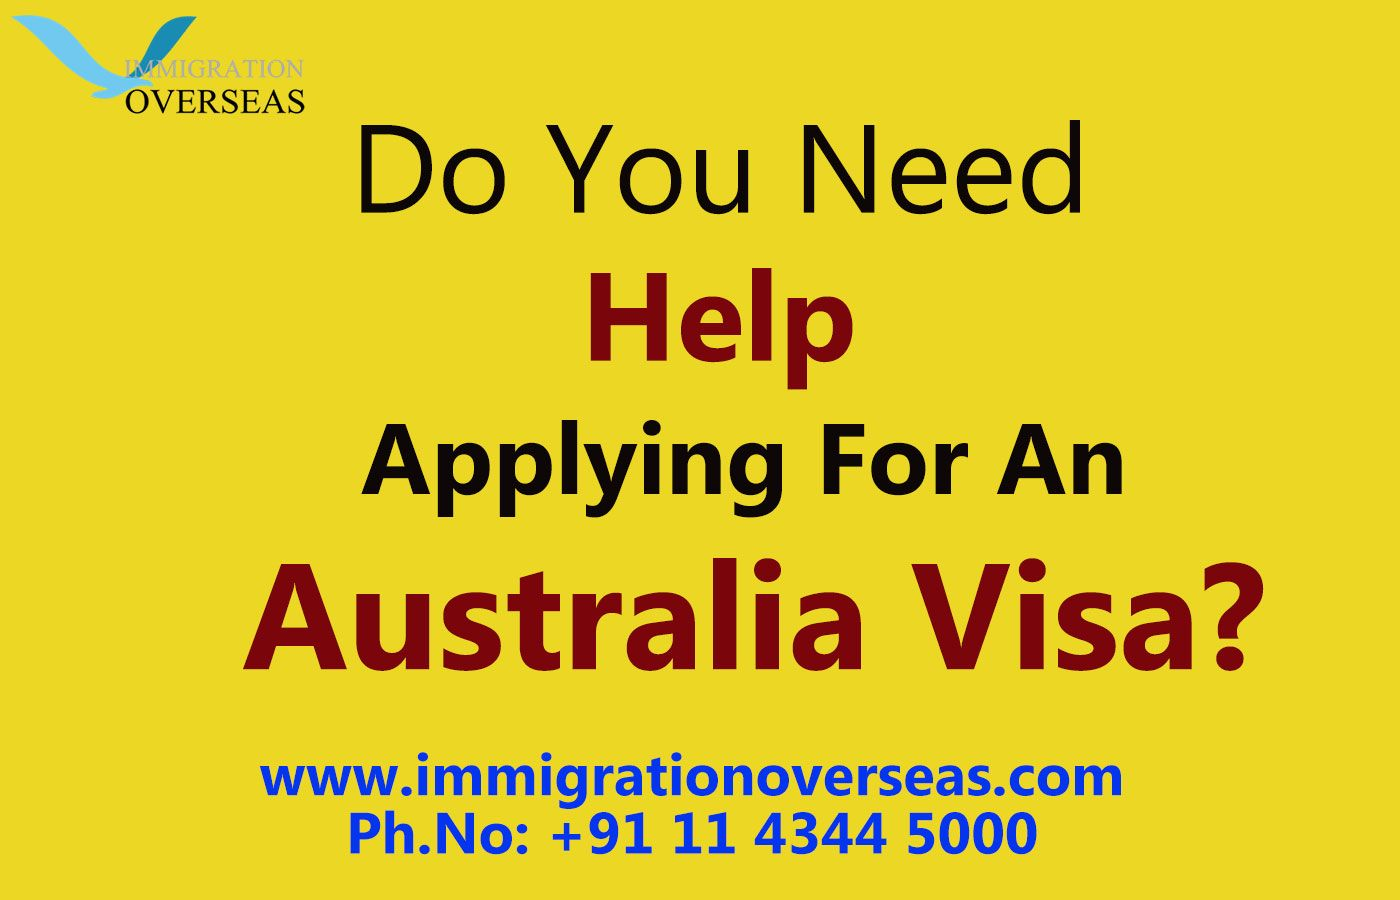 Avail Australia visa from the renowned immigration